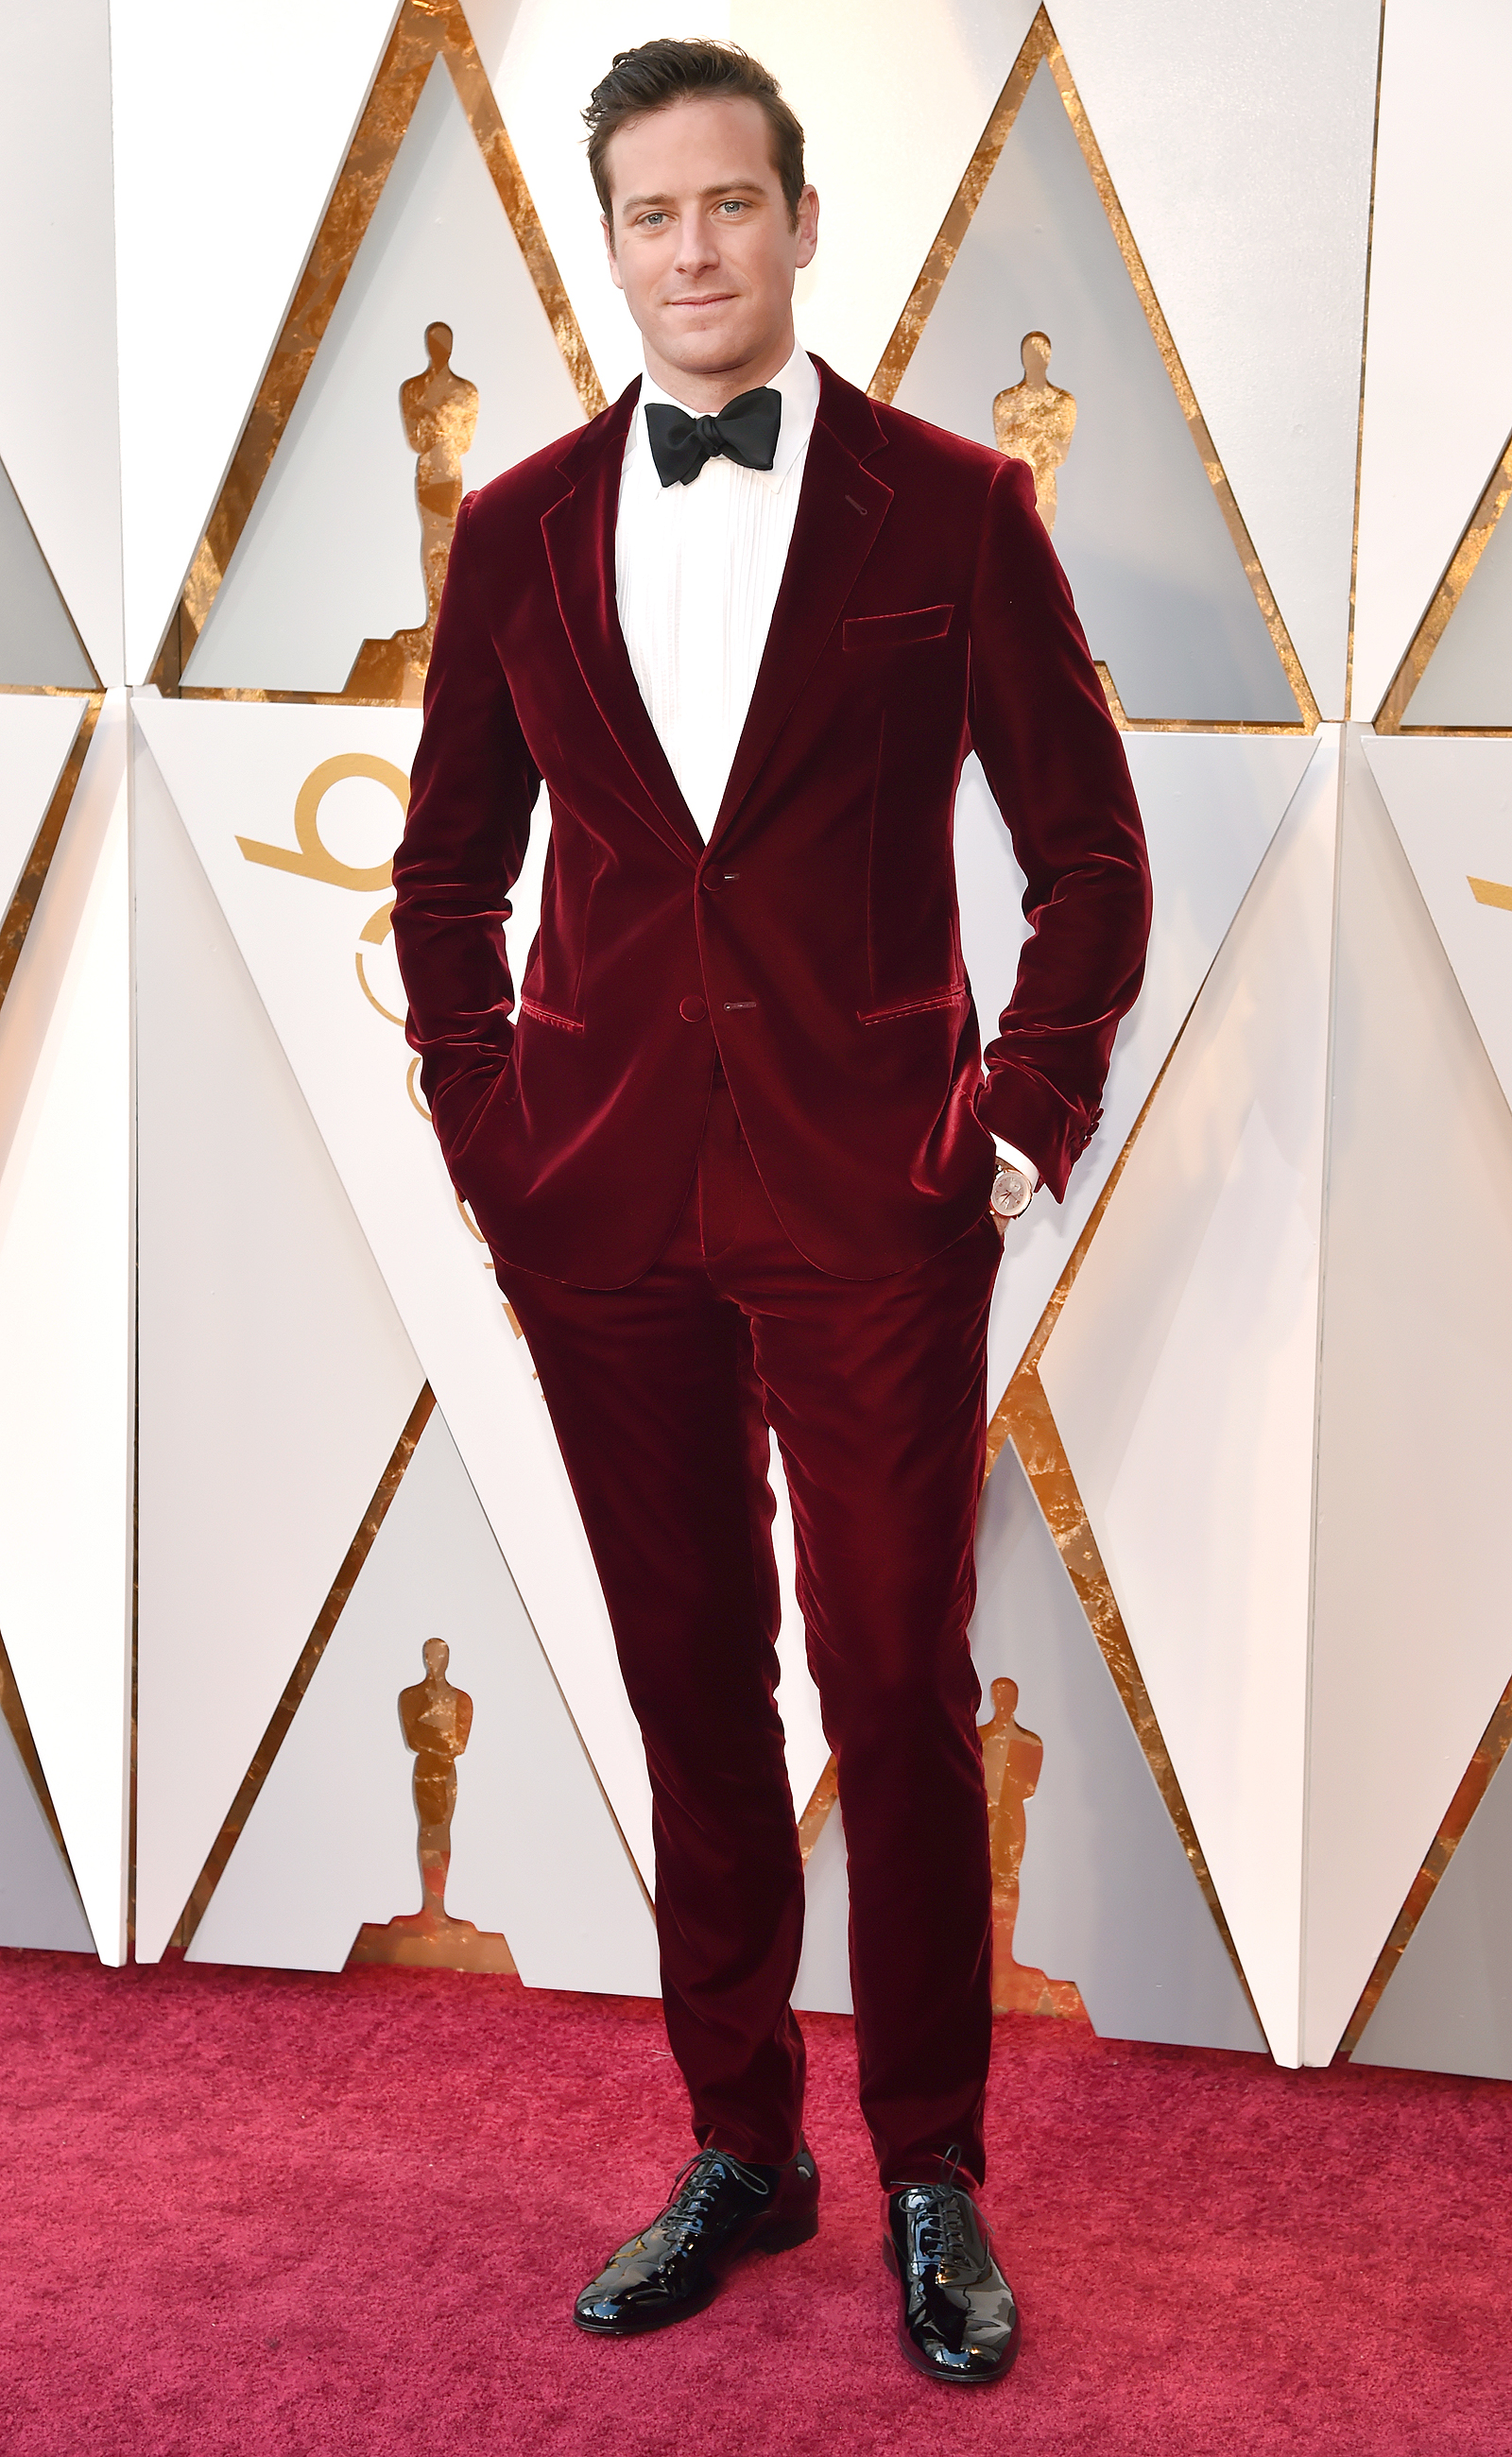 Image of Armie Hammer wearing burgundy tuxedo